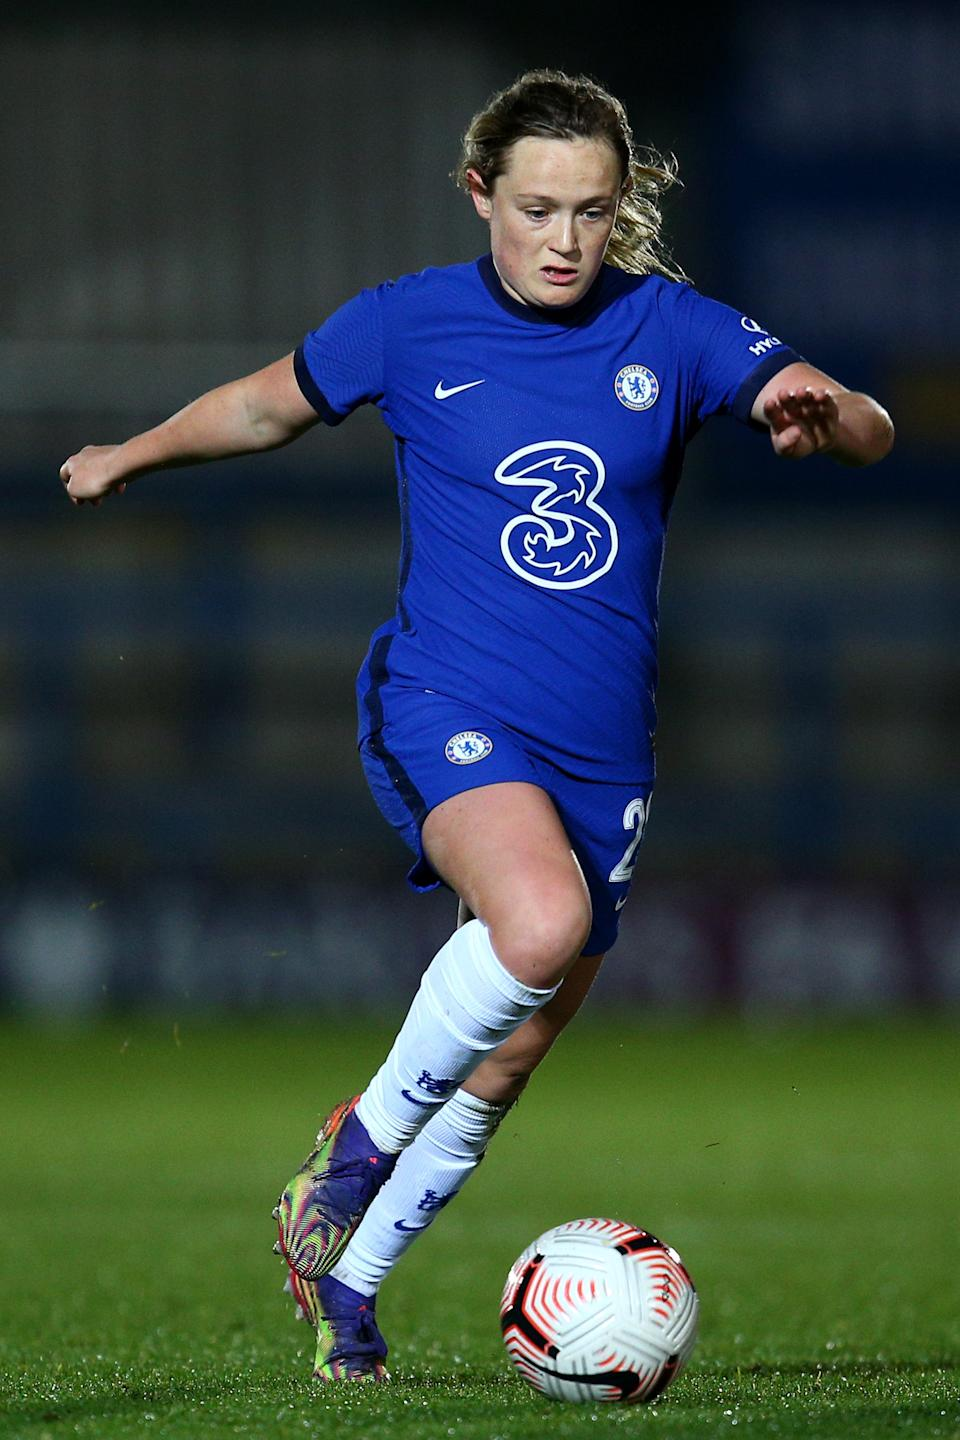 <p>Cuthbert in action for Chelsea</p>Getty Images